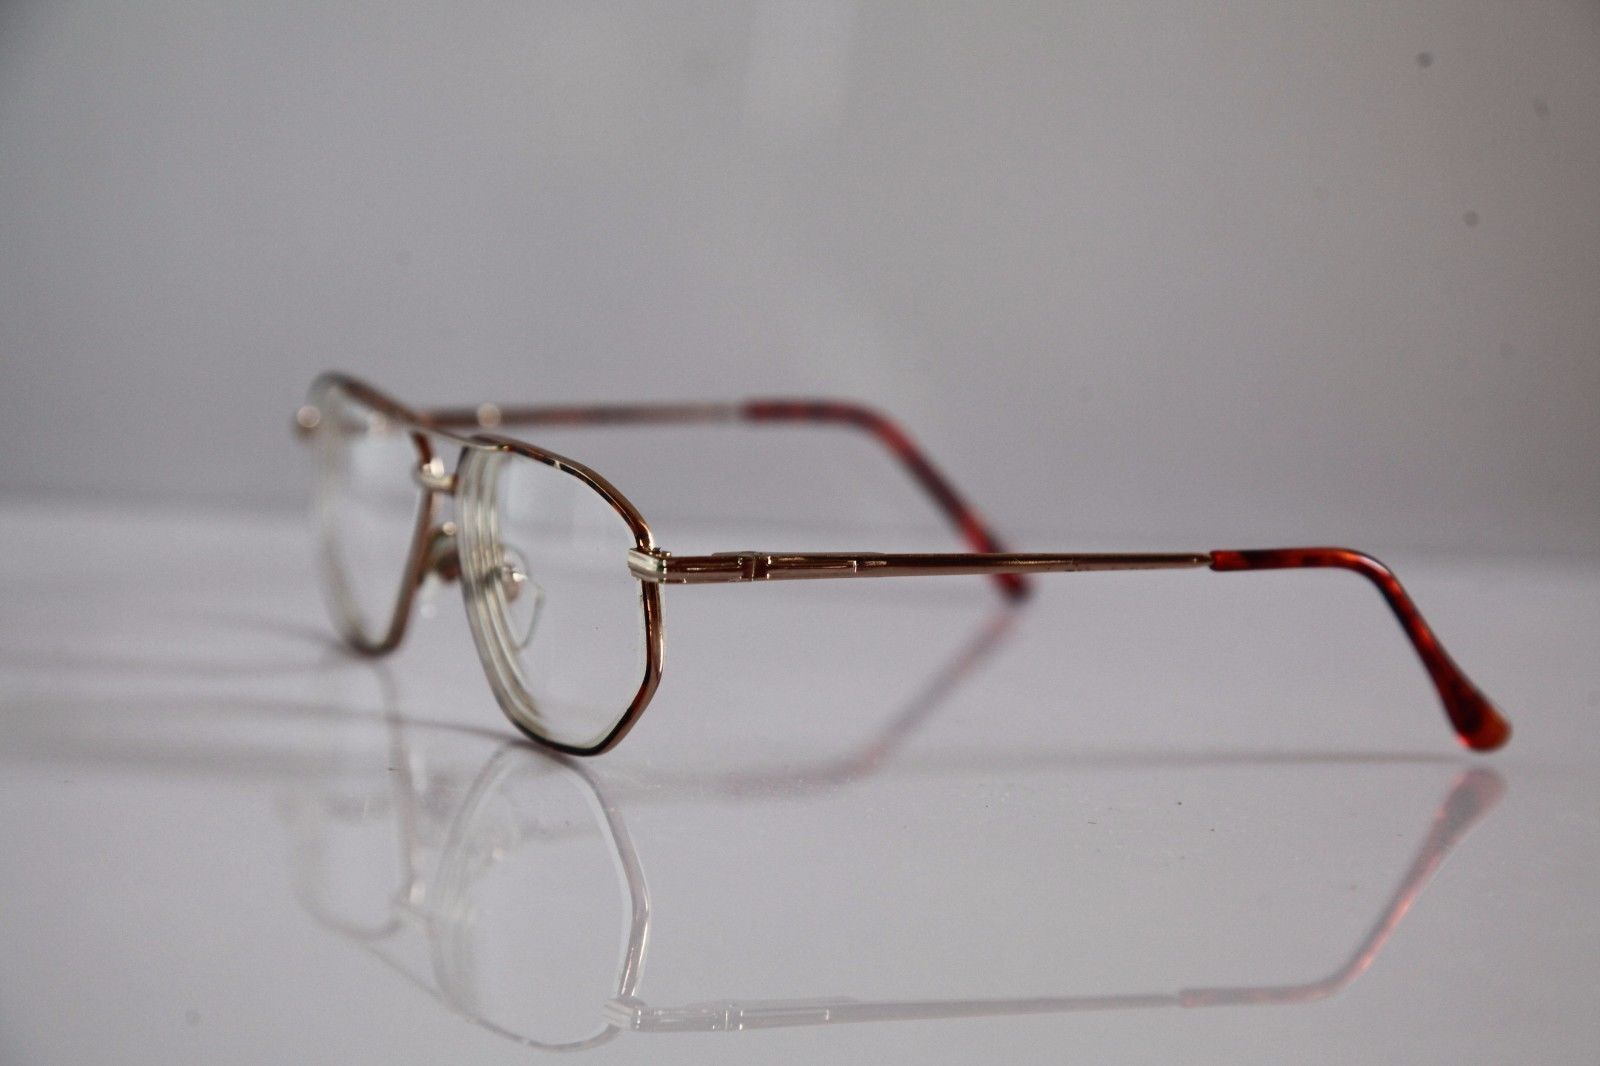 Eyewear, Gold Frame,  RX-Able  Prescription lenses.